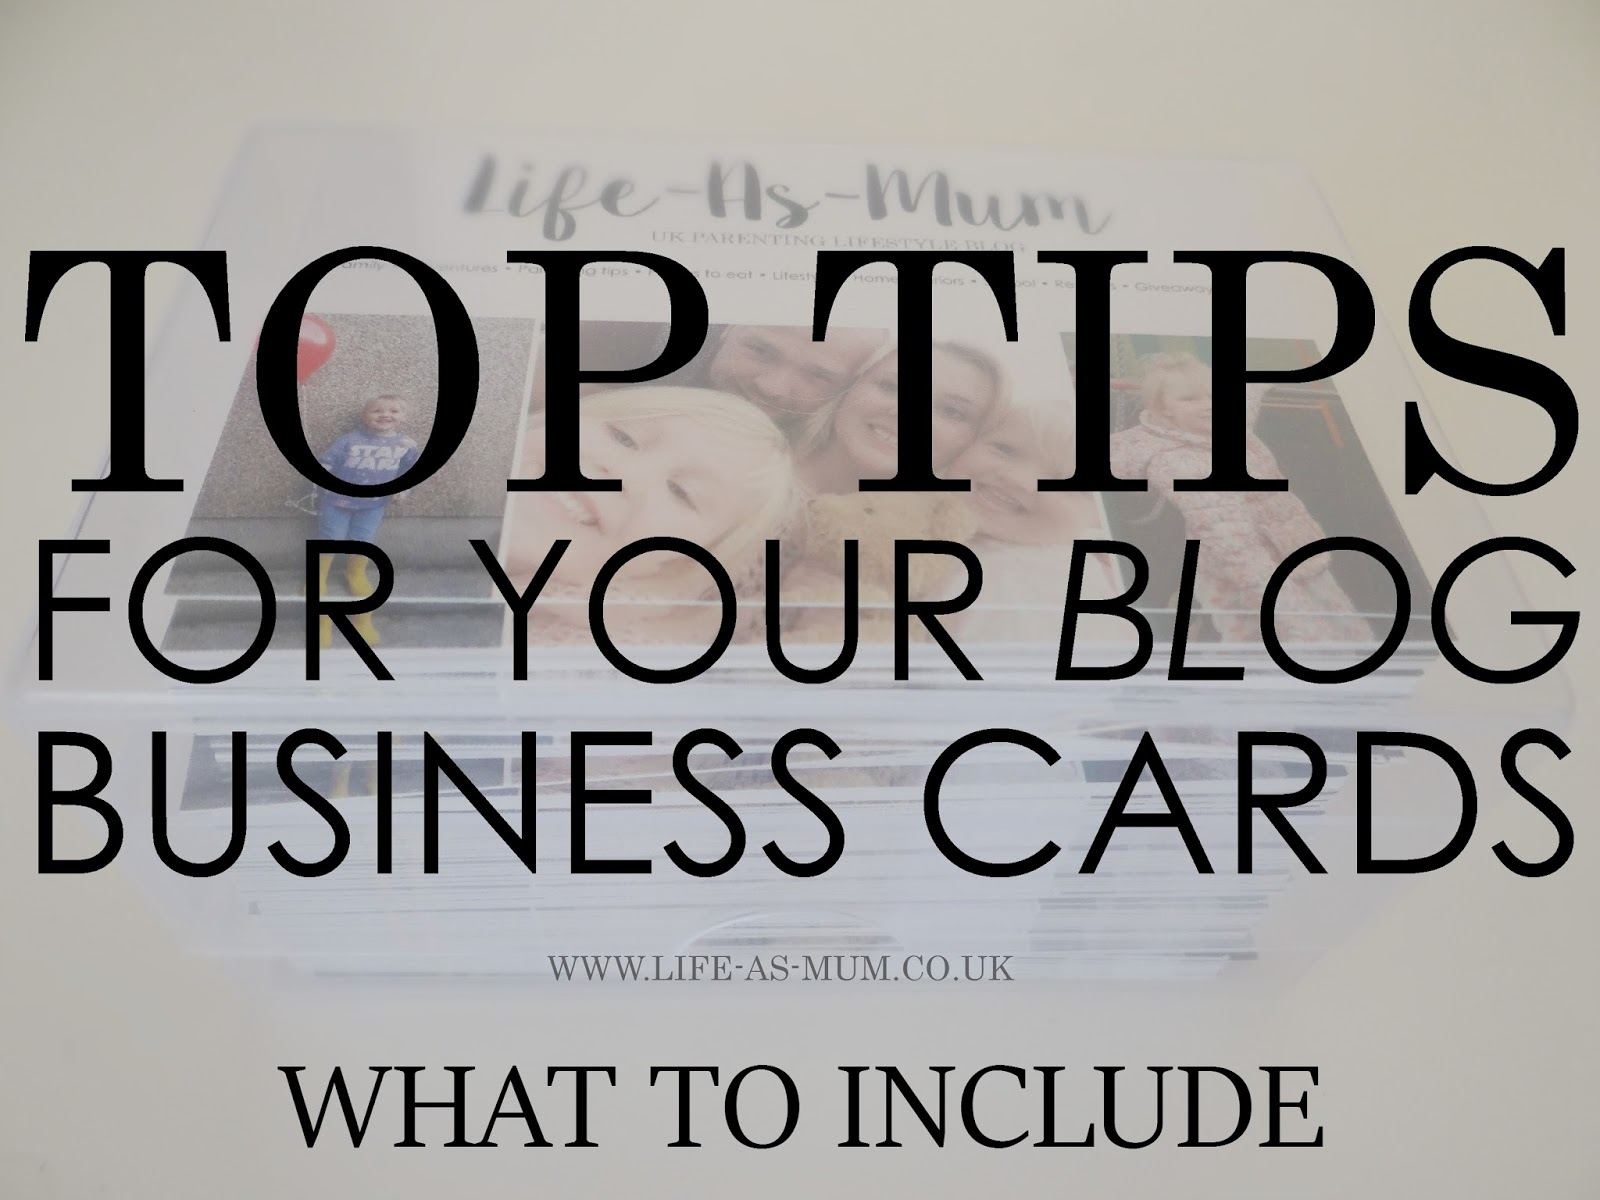 Top Tips For Your Blog Business Cards - What To Include | Review ...